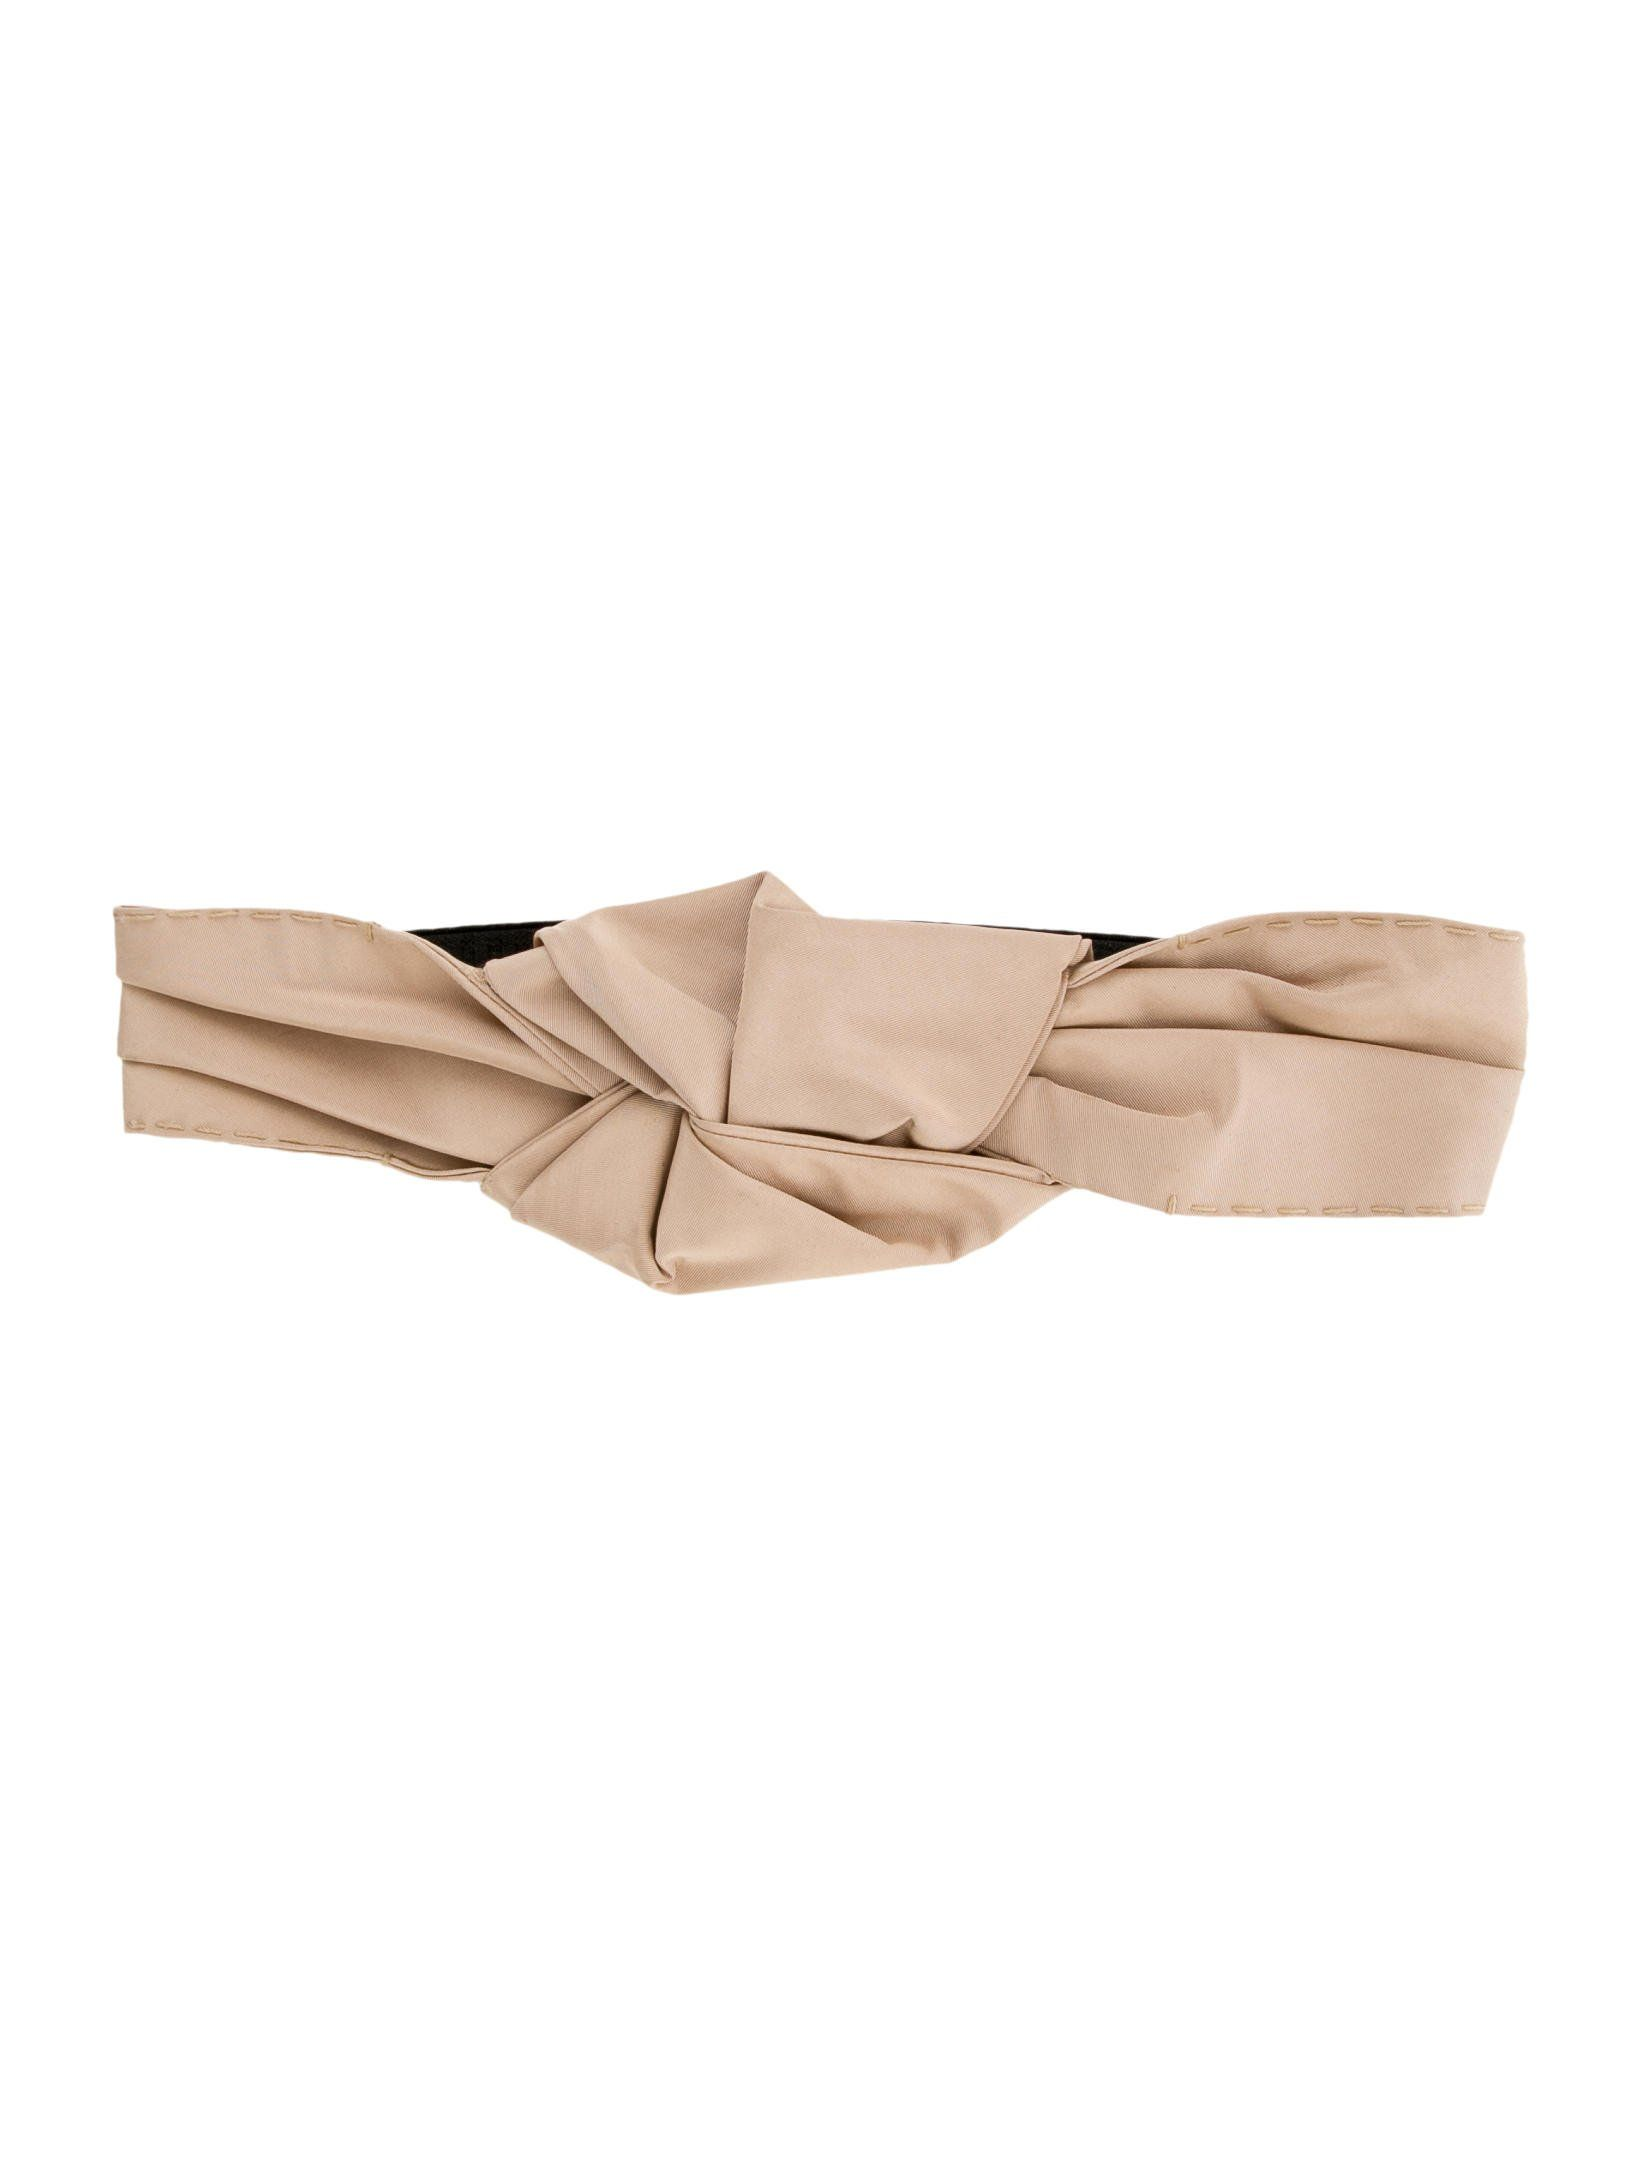 Beige Tessuto Prada headband with knot accent at top and elasticized trim at back.